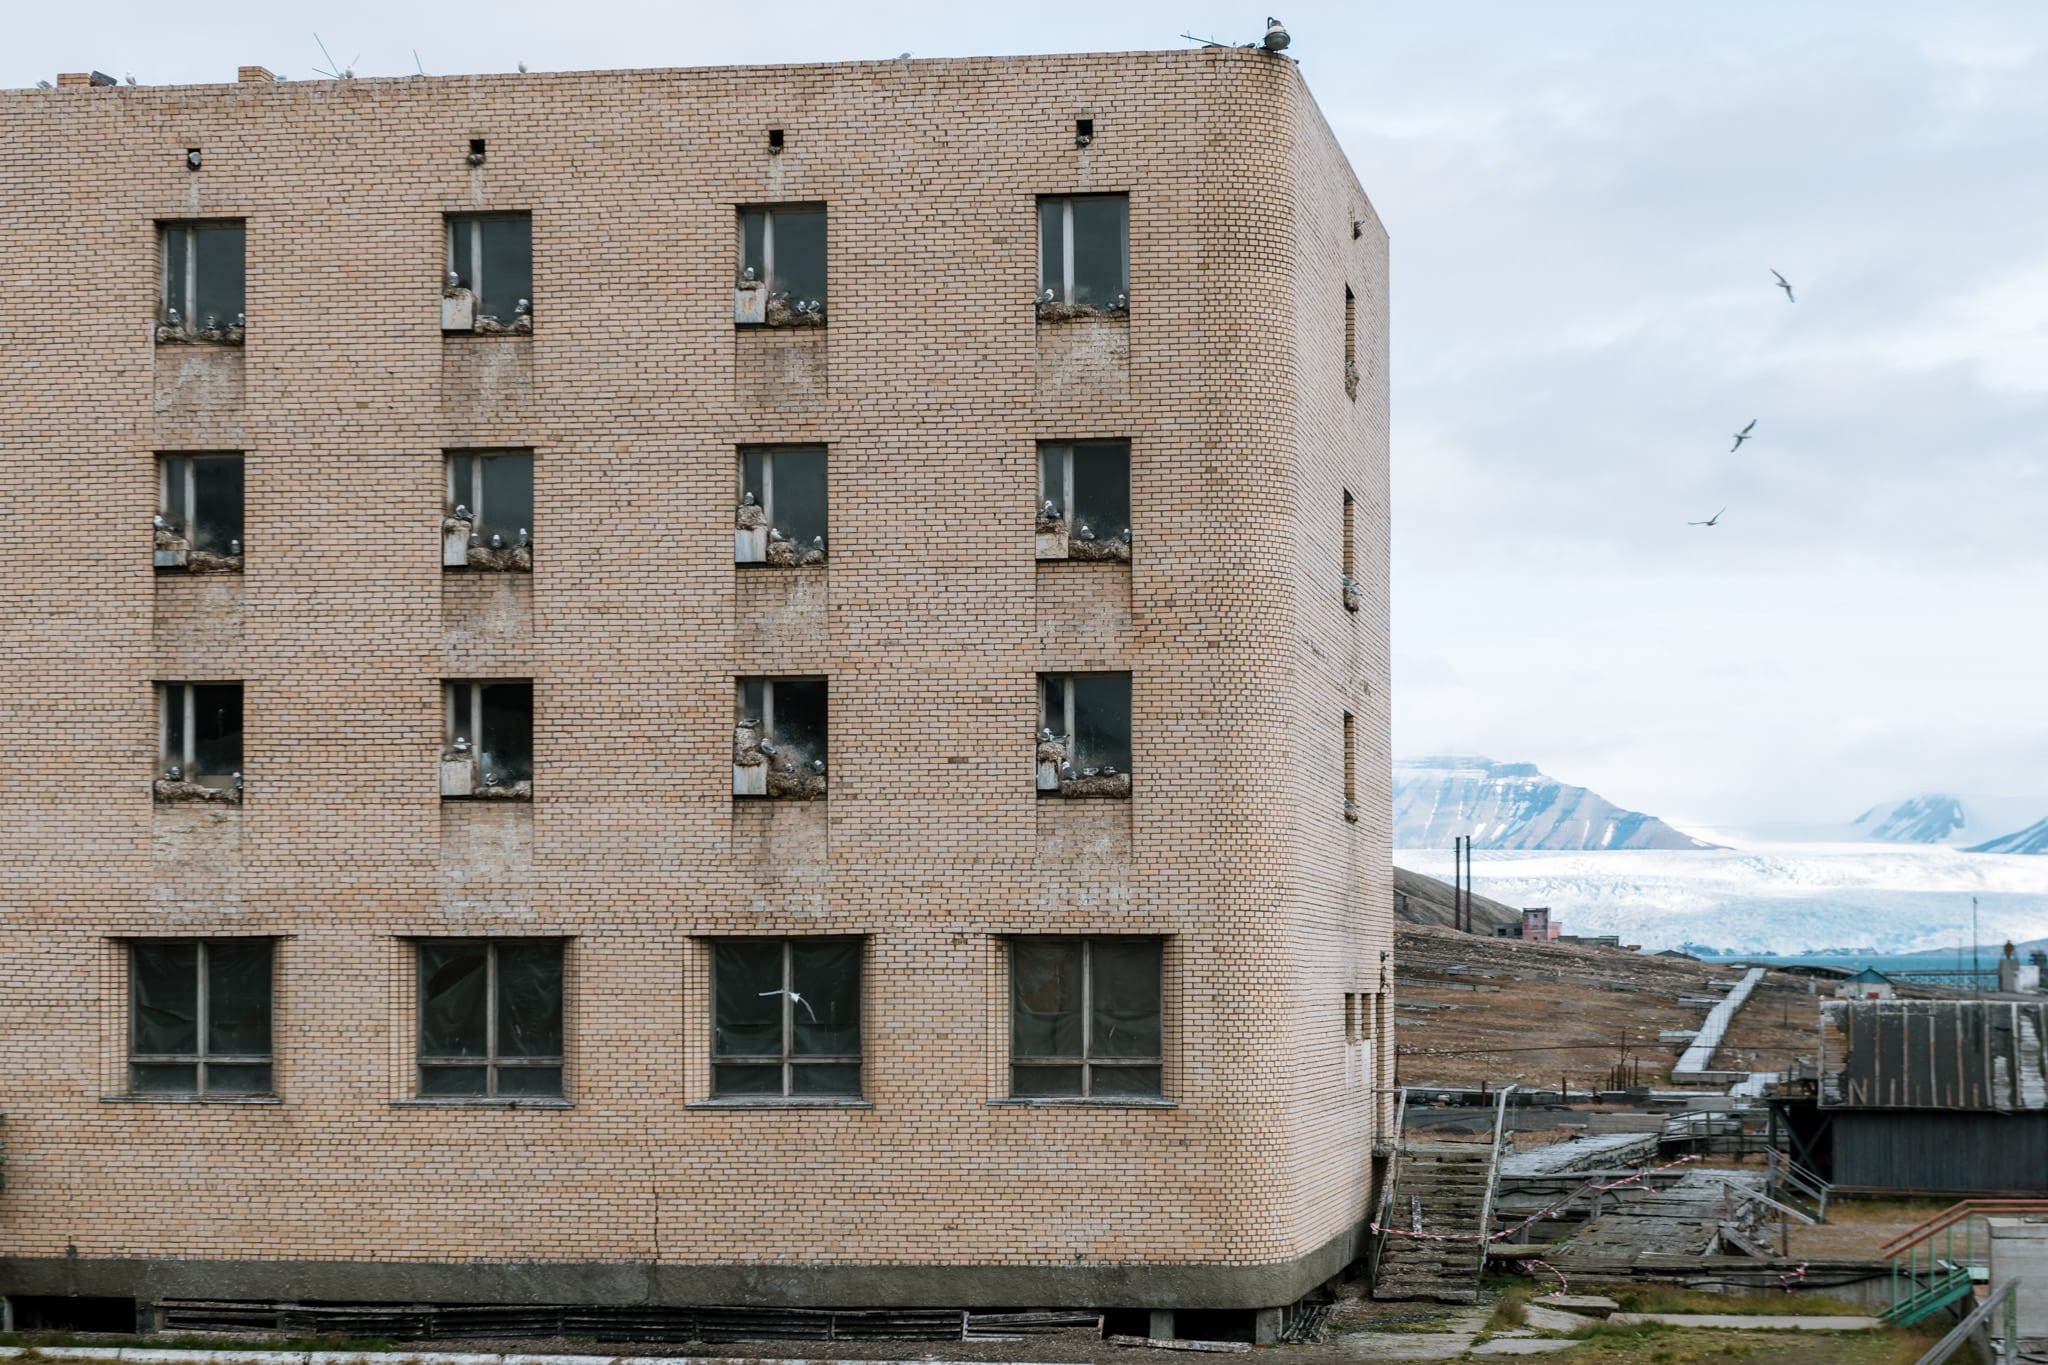 Pyramiden is a long lost settlement on the northern part of the Svalbard archipelago in northernmost Norway. It used to be a russian mining town but is now a time capsule and a lost place. By photographer Michael Schauer